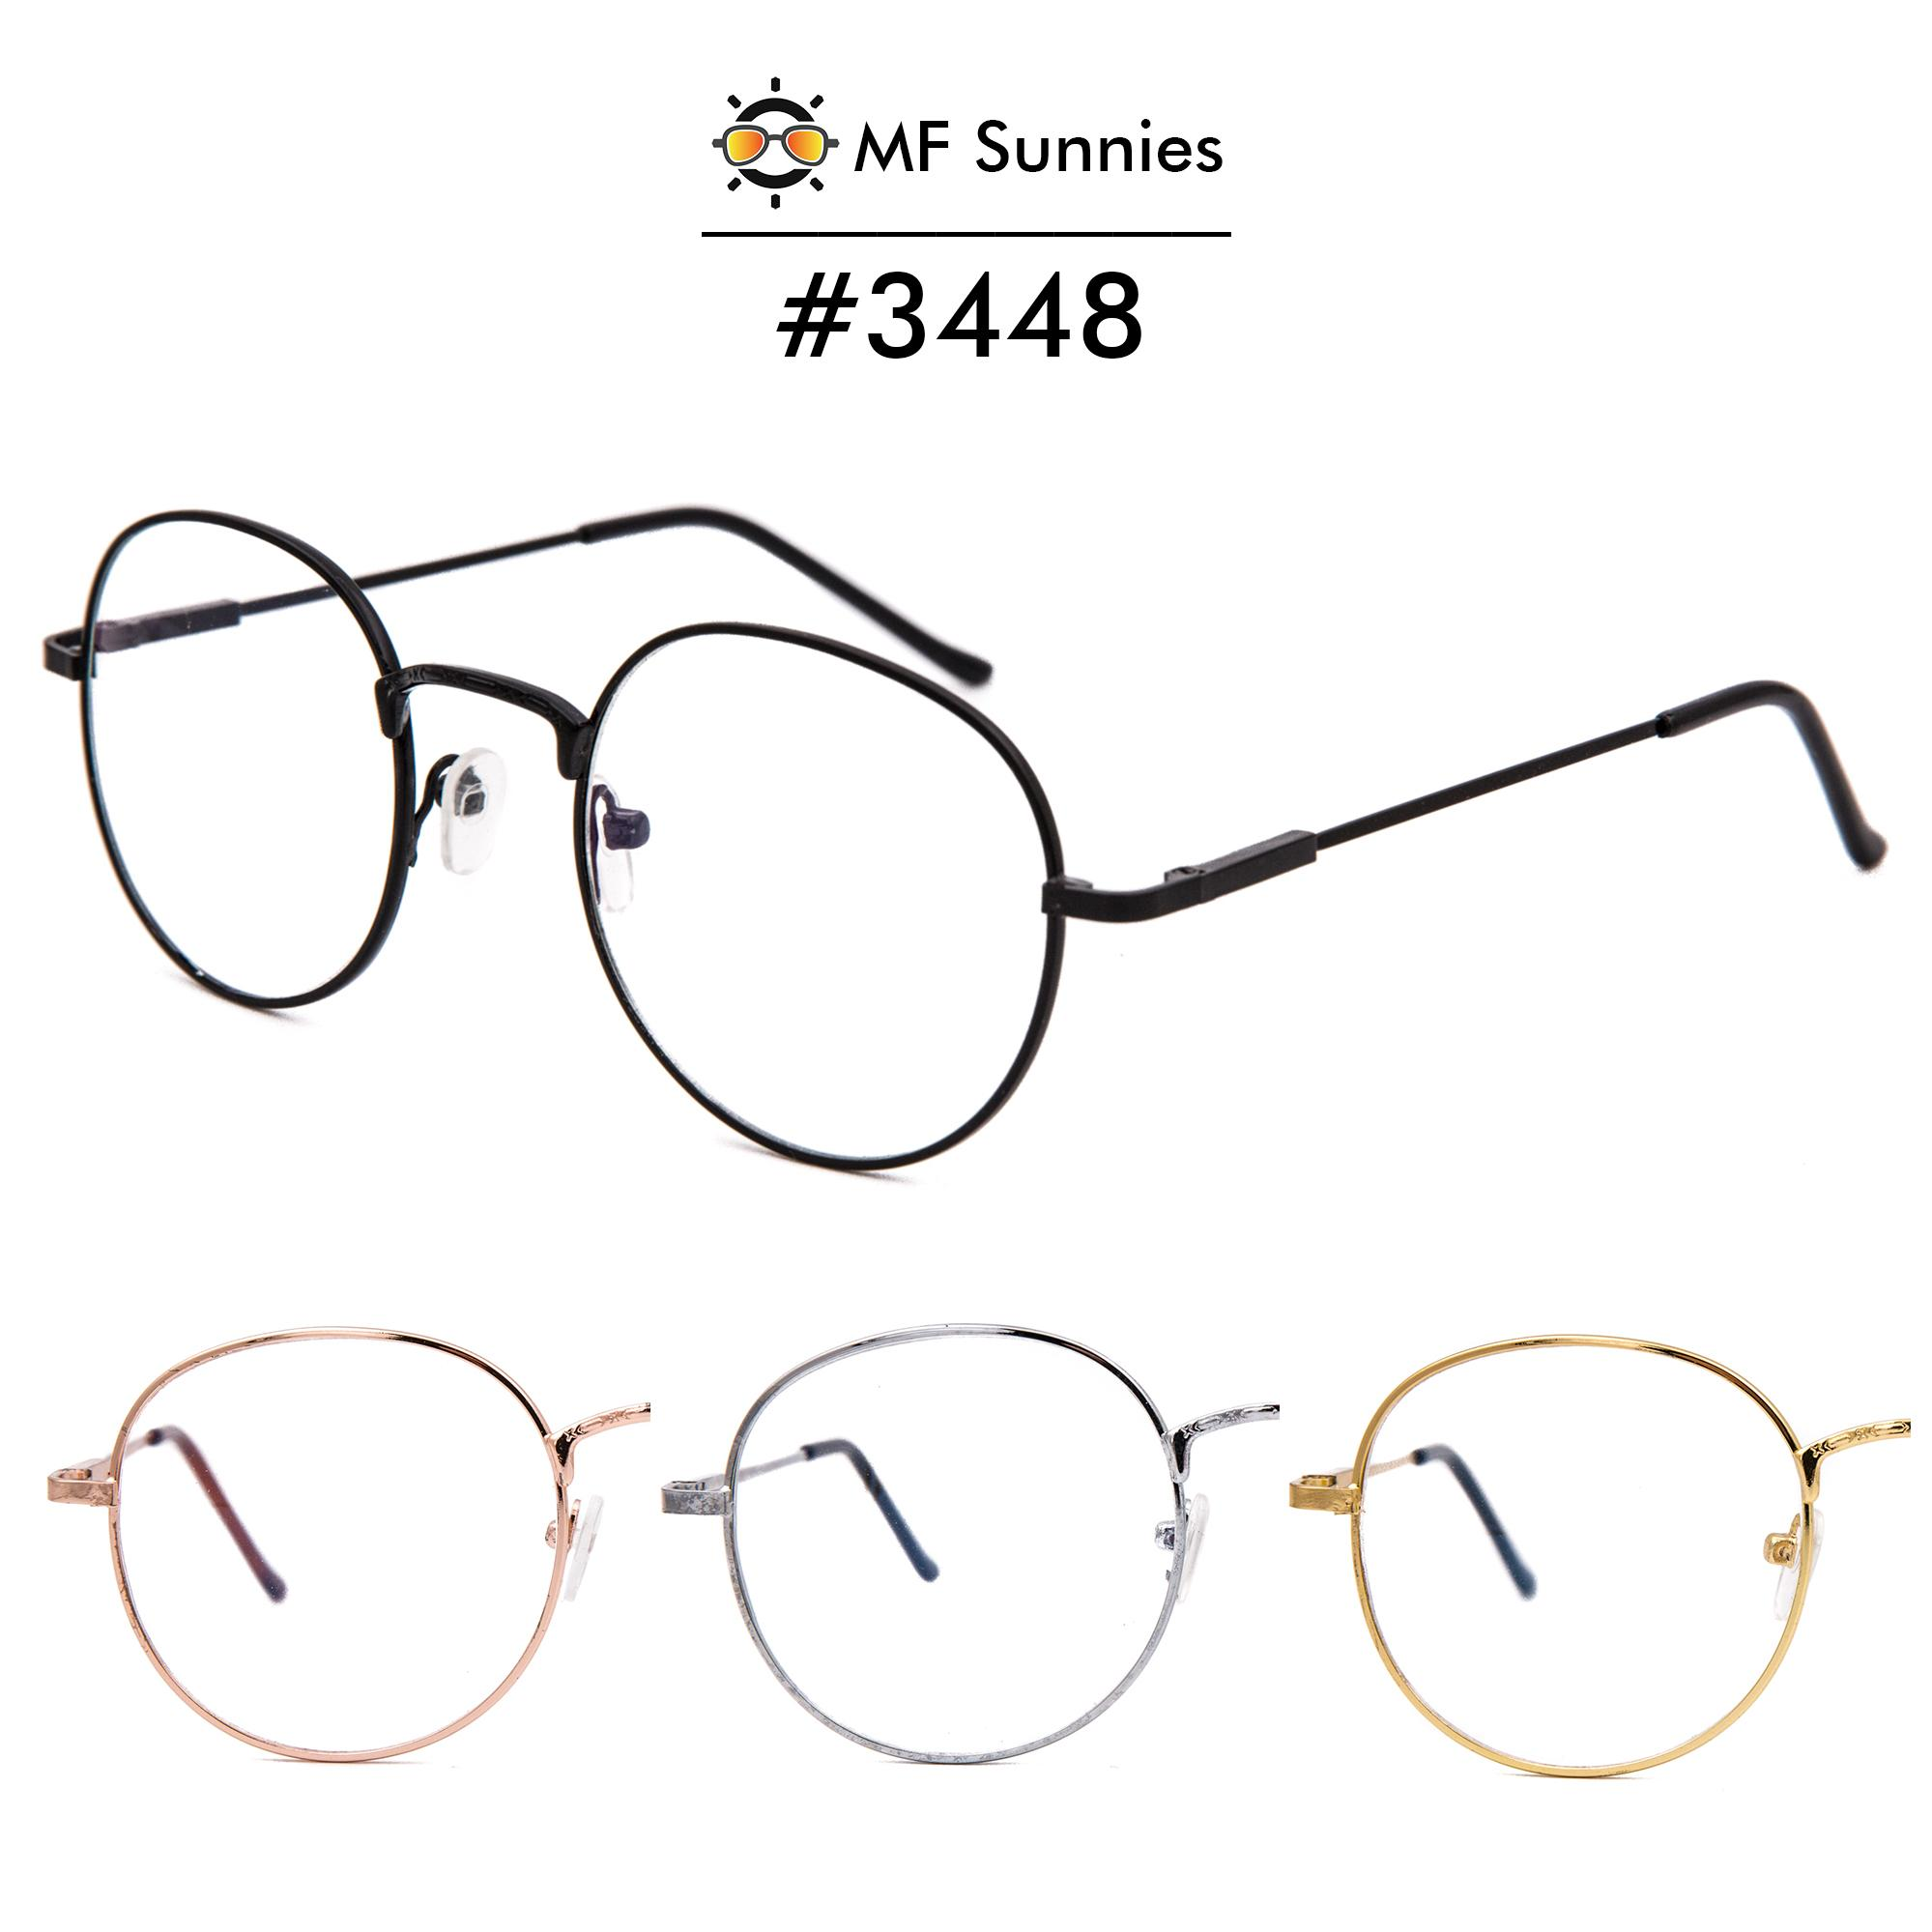 341f7ca140 Eyeglasses for sale - Reading Glasses online brands